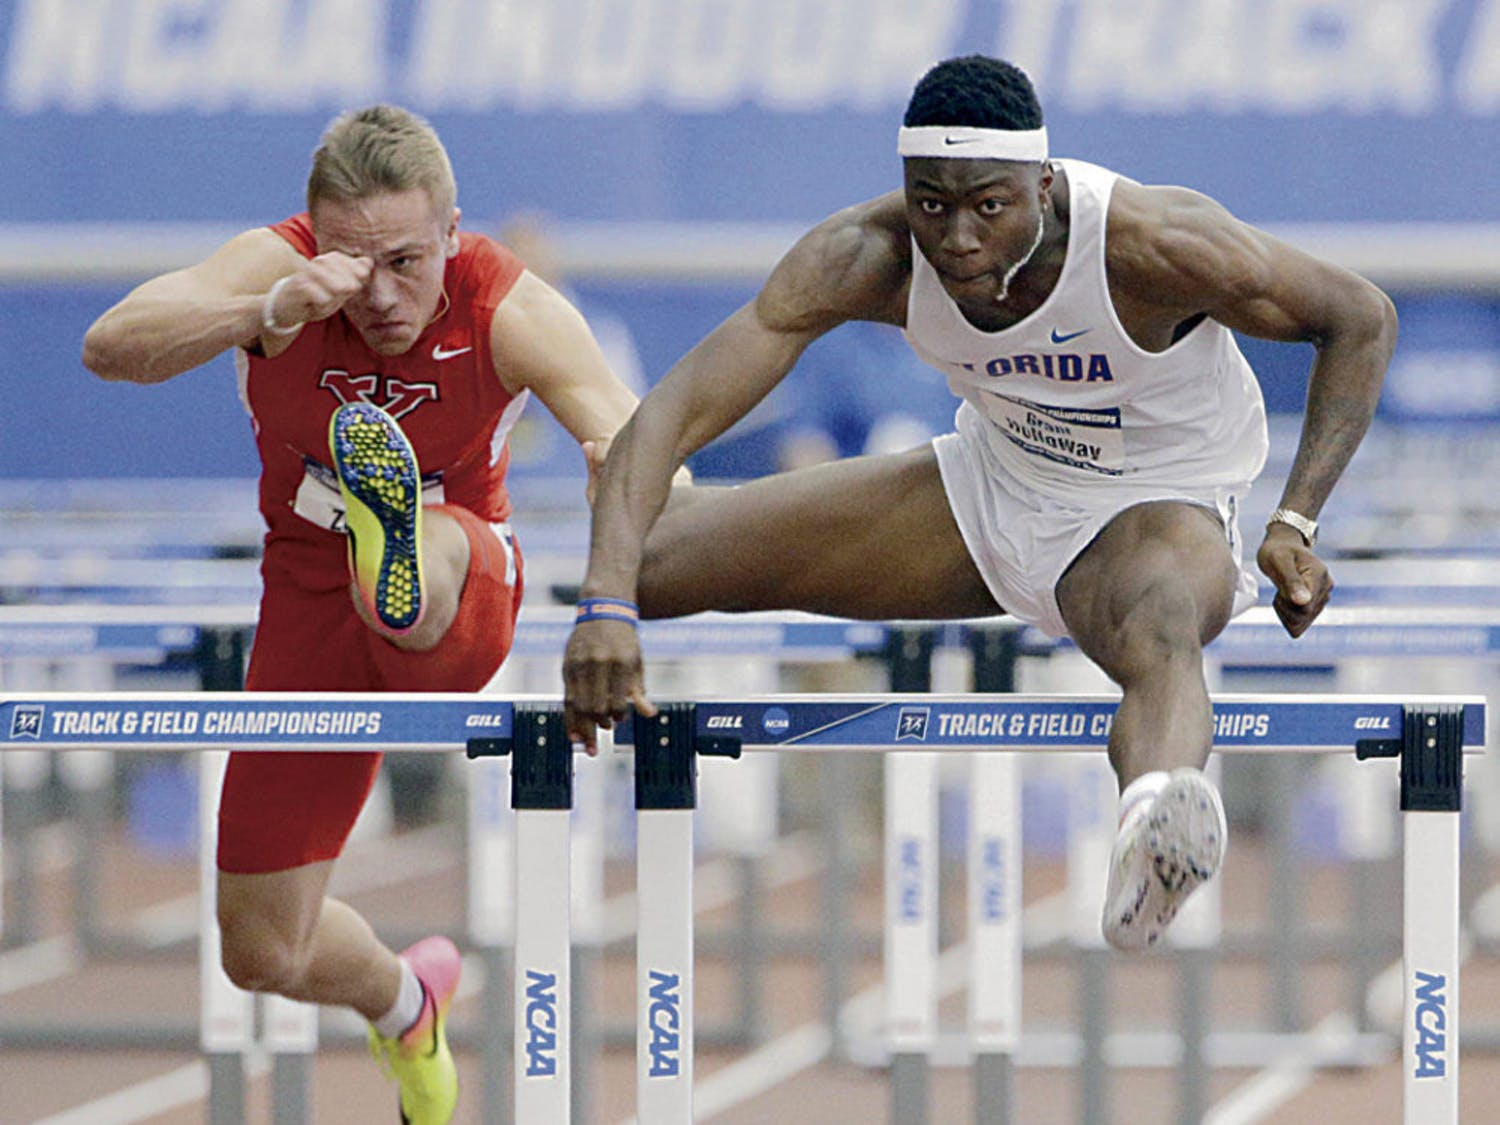 Sophomore Grant Holloway broke the NCAA record in the 60-meter hurdles on Friday.